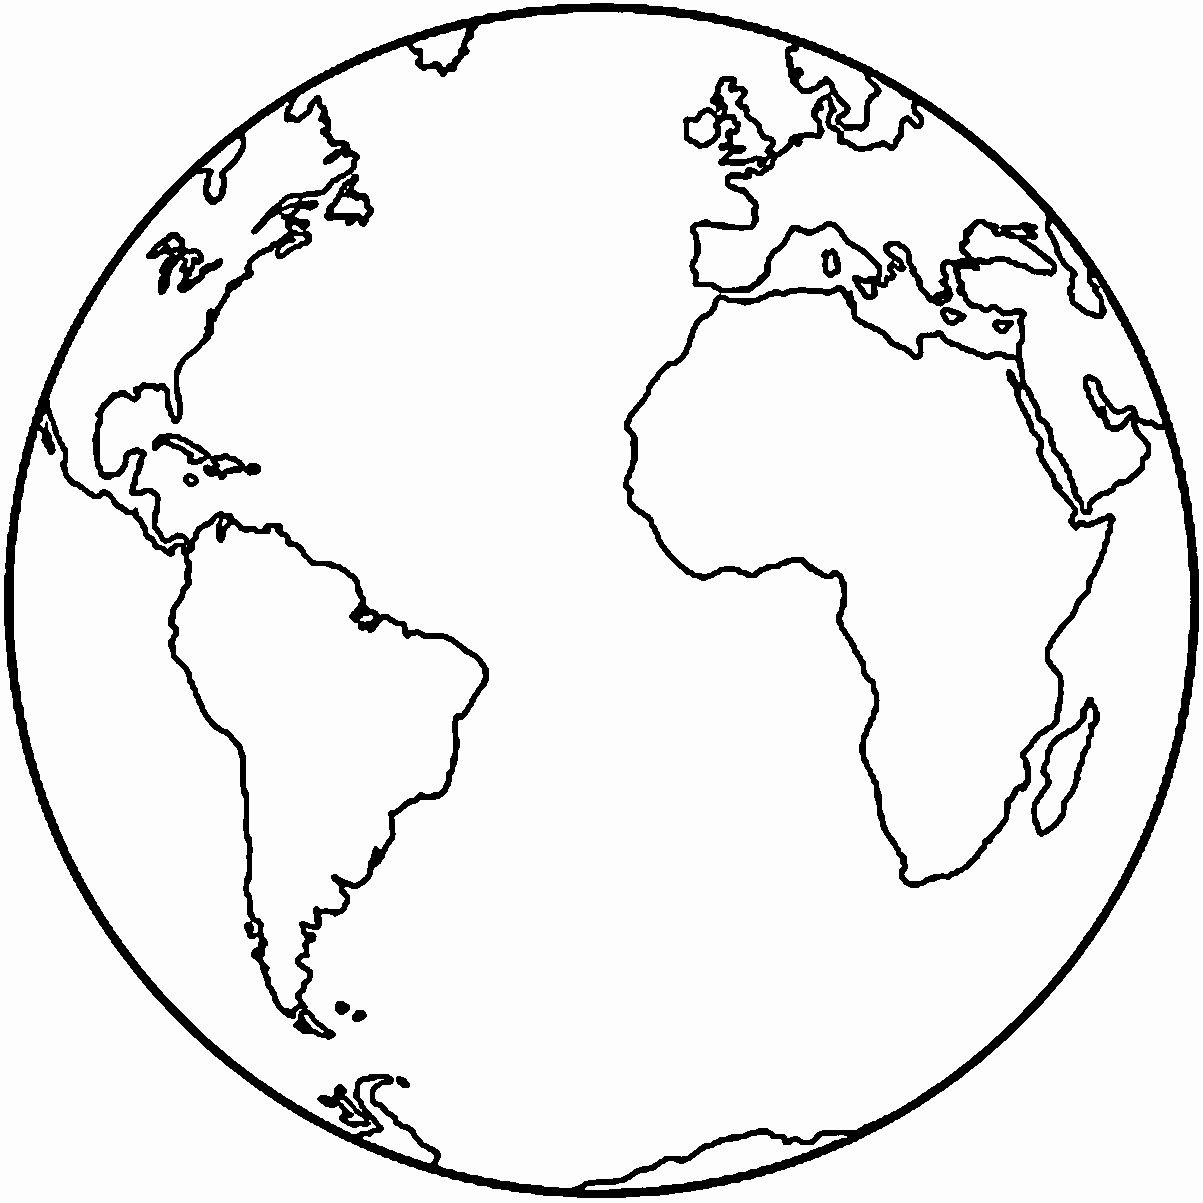 Pin By Floor De Kort On Resimler Kaliplar Earth Coloring Pages Planet Coloring Pages Earth Drawings